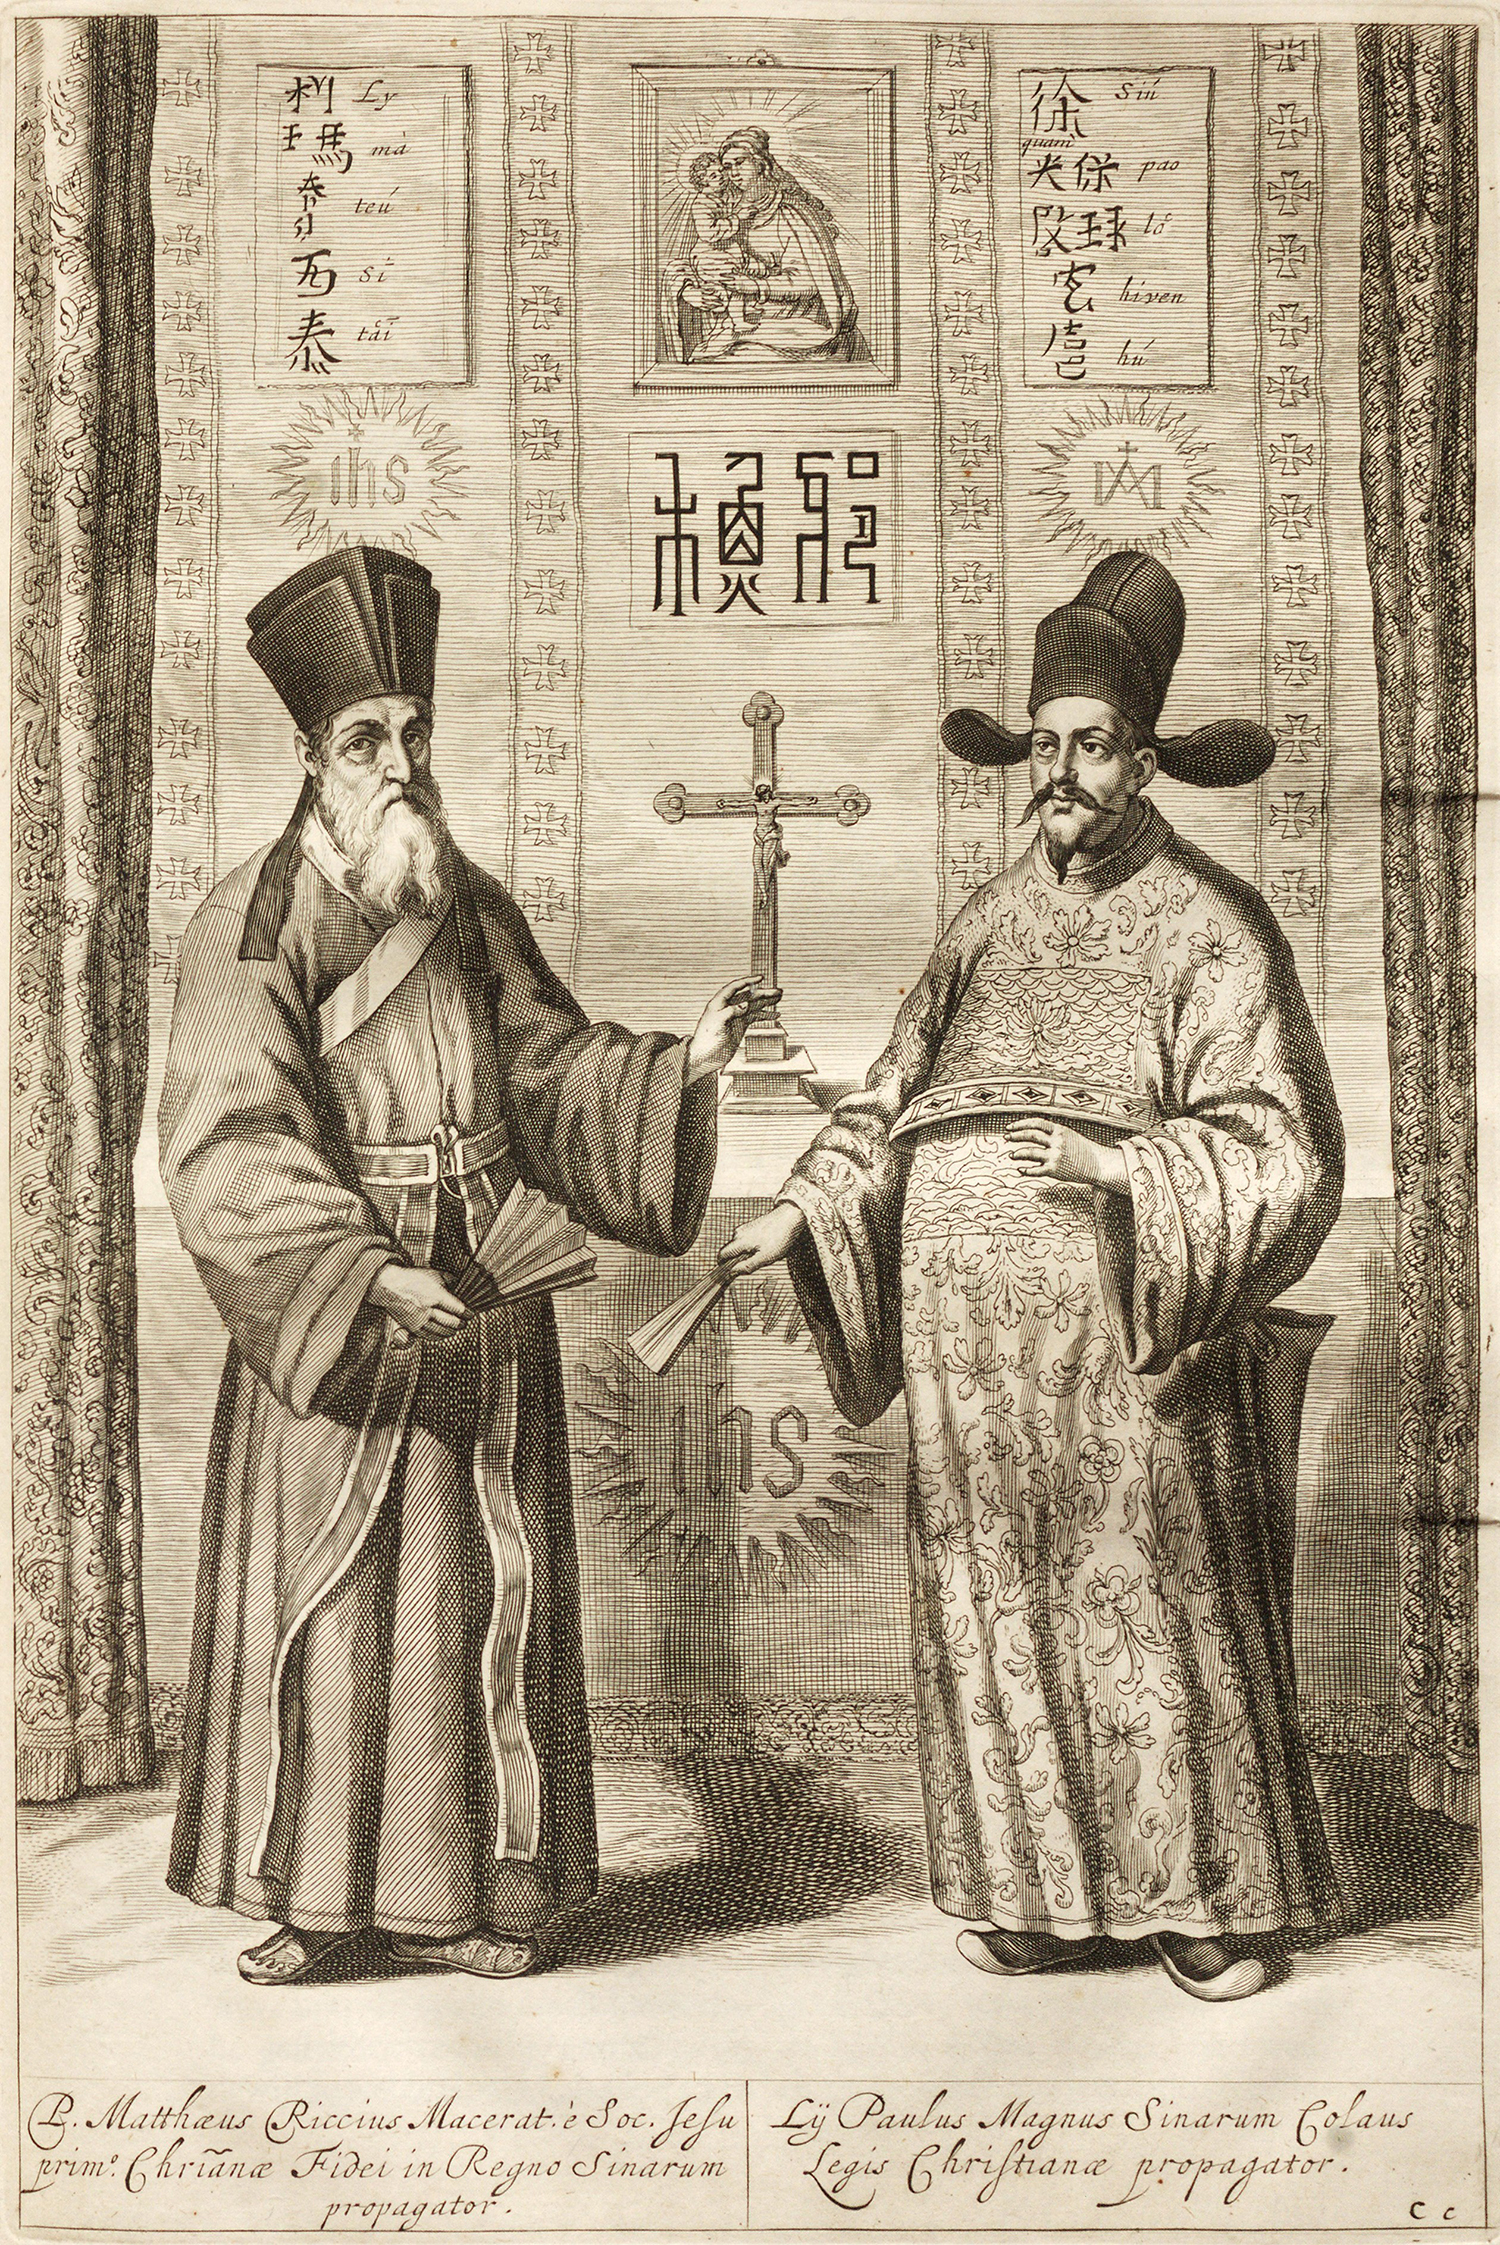 matteo ricci essay View matteo ricci research papers on academiaedu for free.